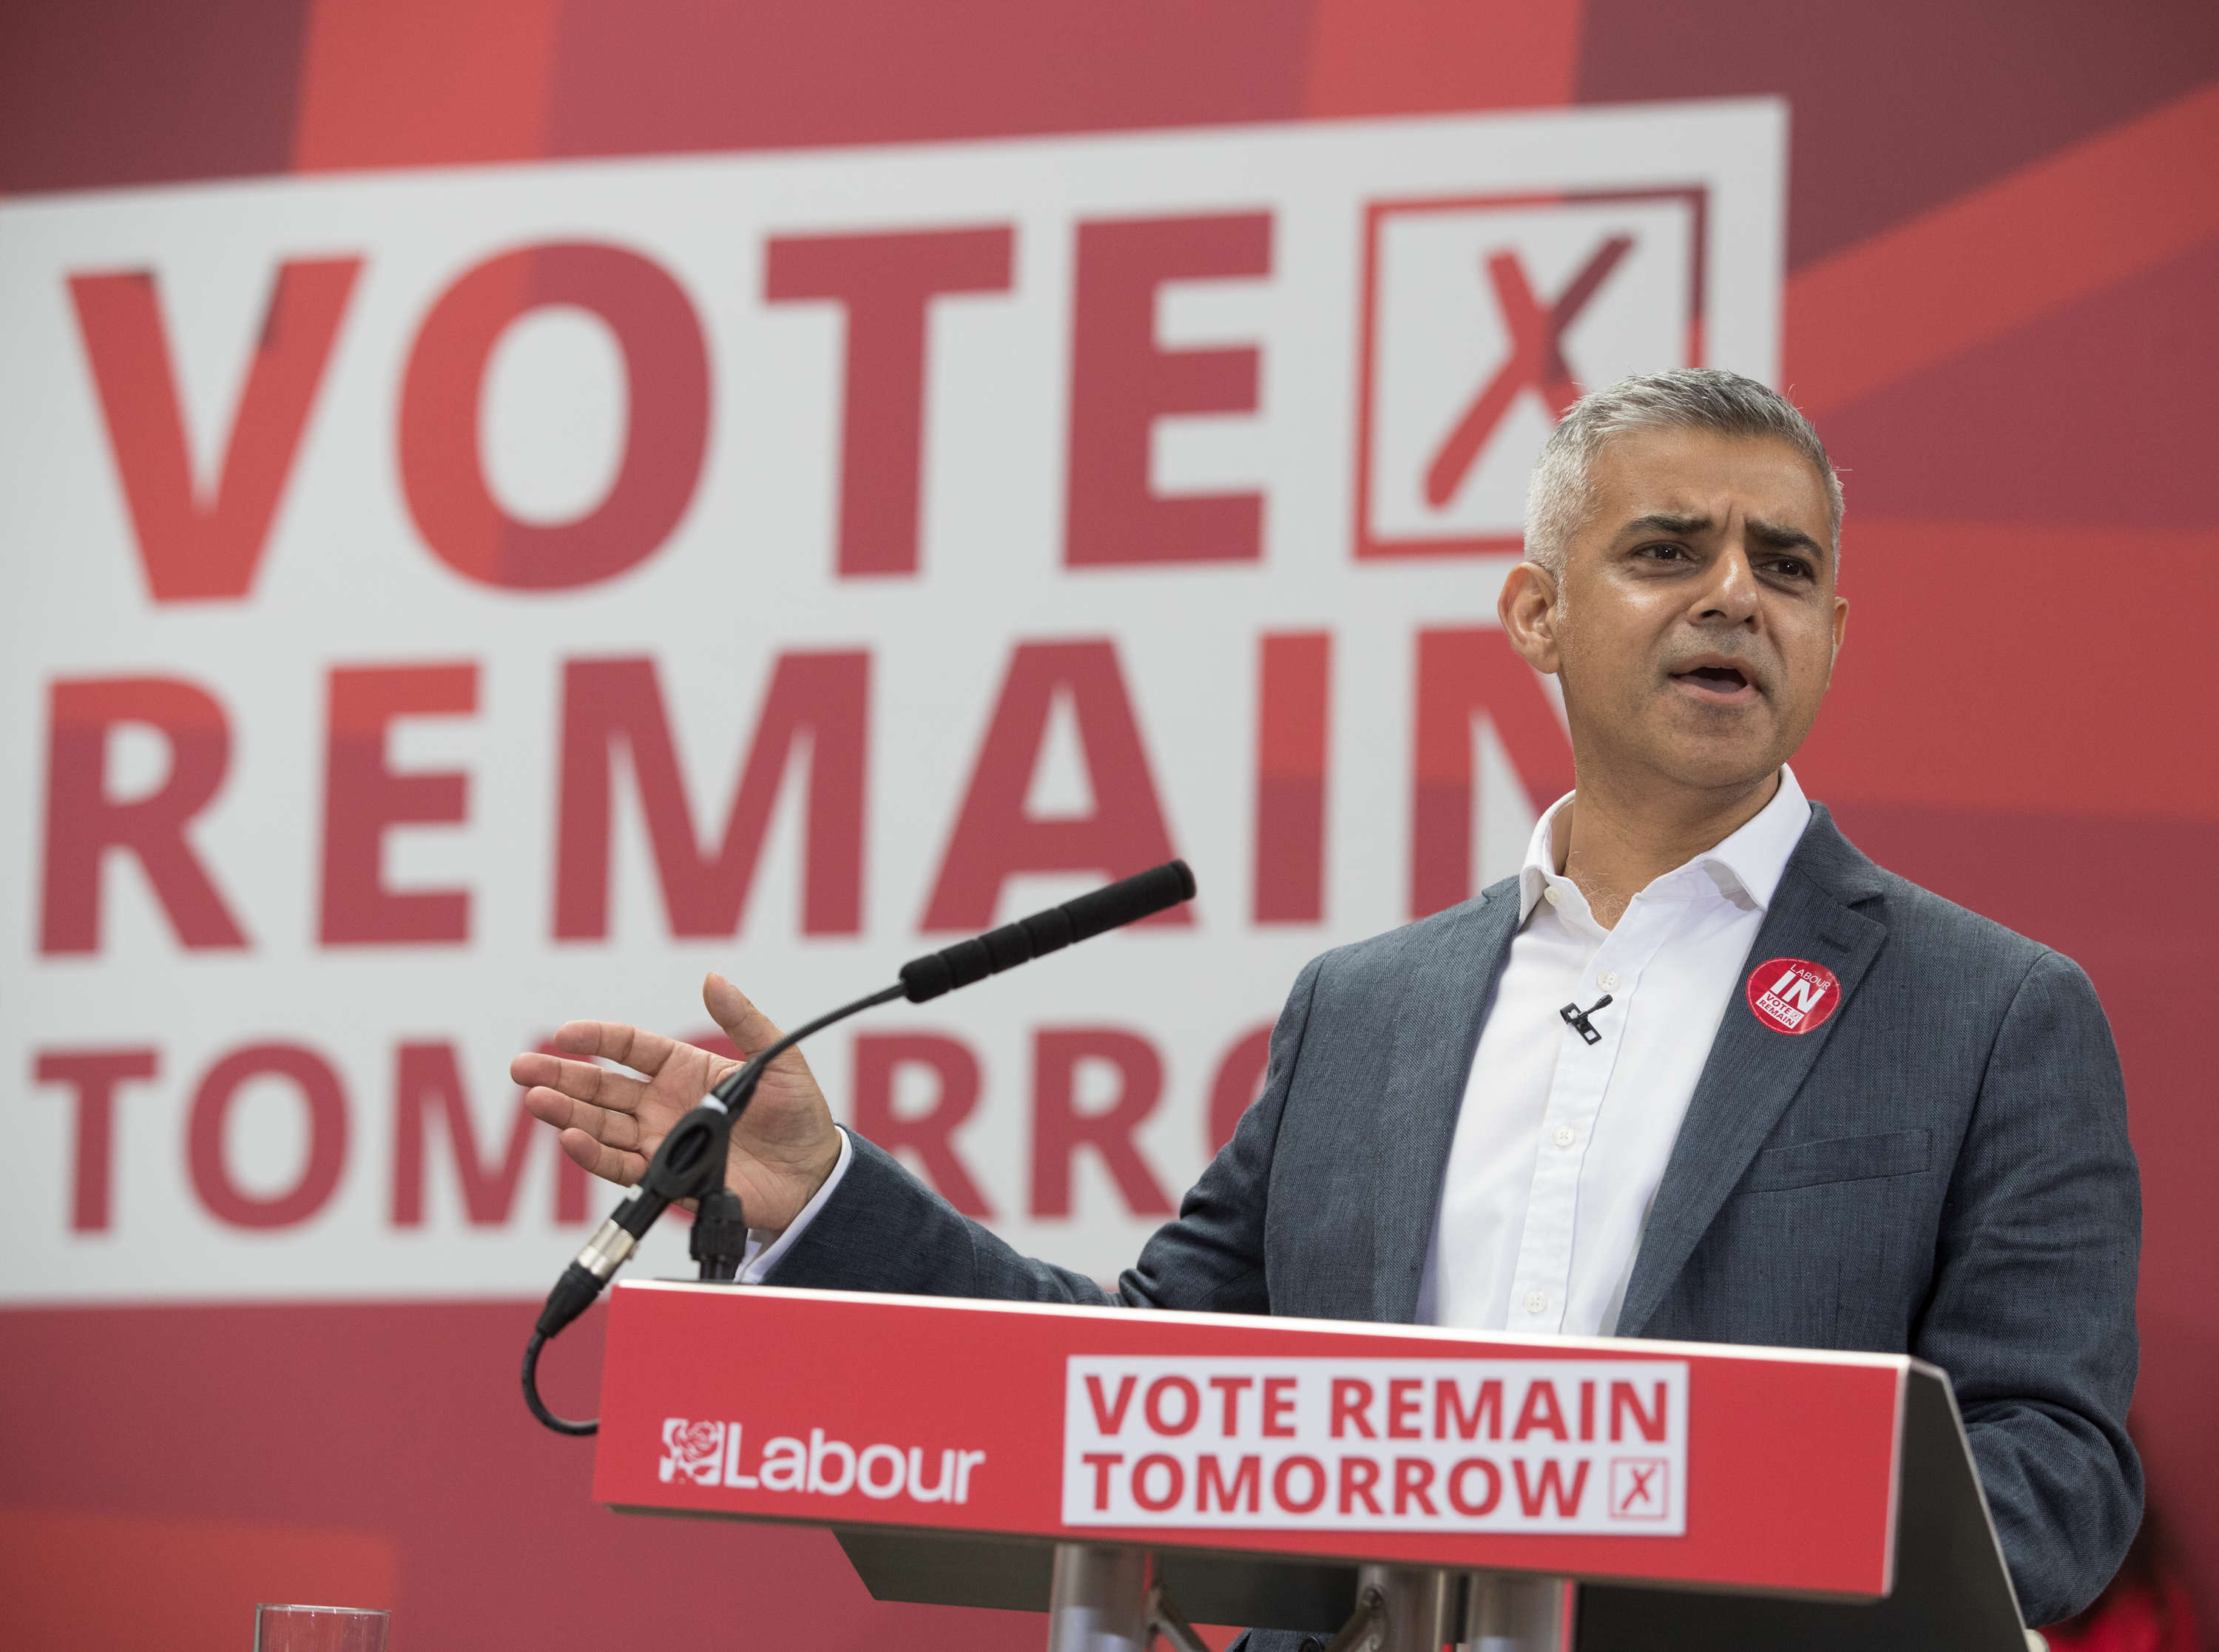 Brexit Has Pushed Thousands Of Londoners To Take This Extreme Action sadiq11